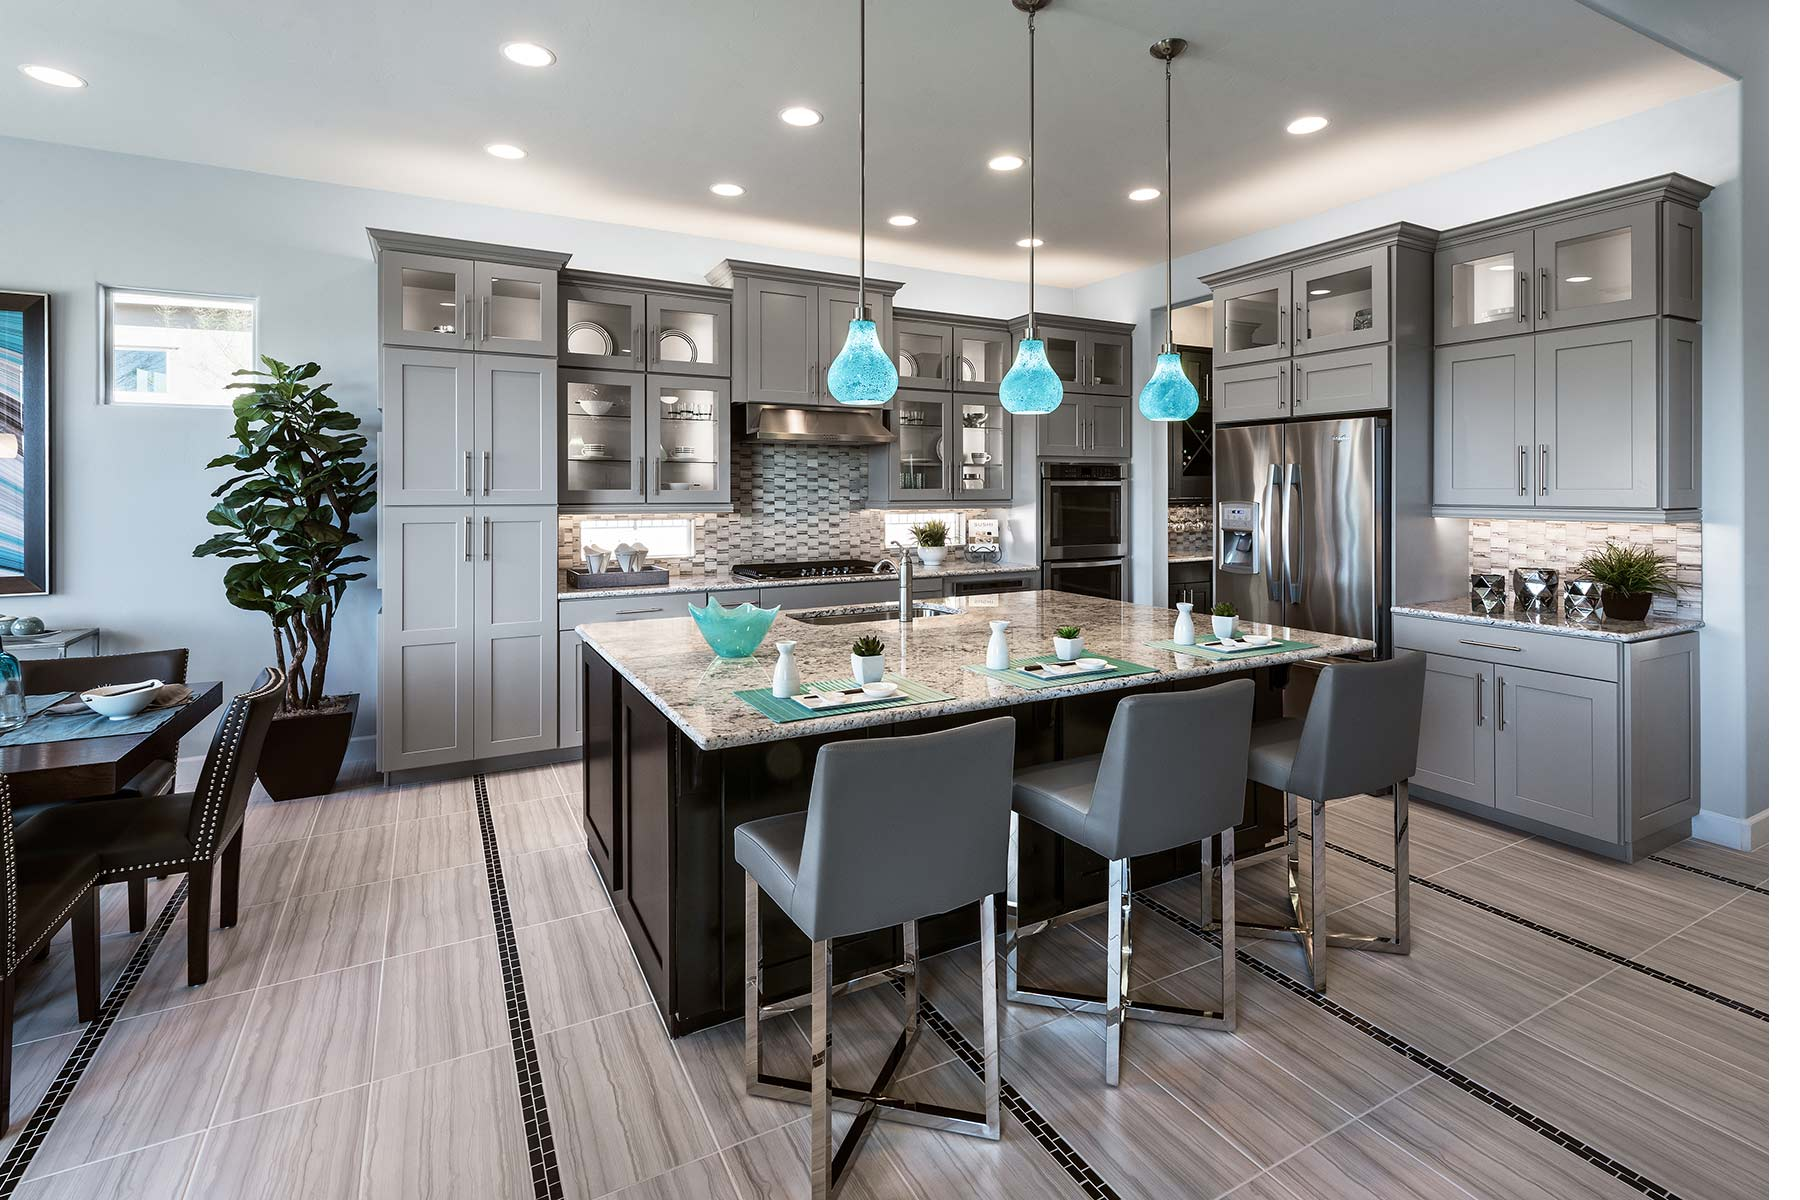 Dove Mountain Kitchen in Marana Arizona by Mattamy Homes